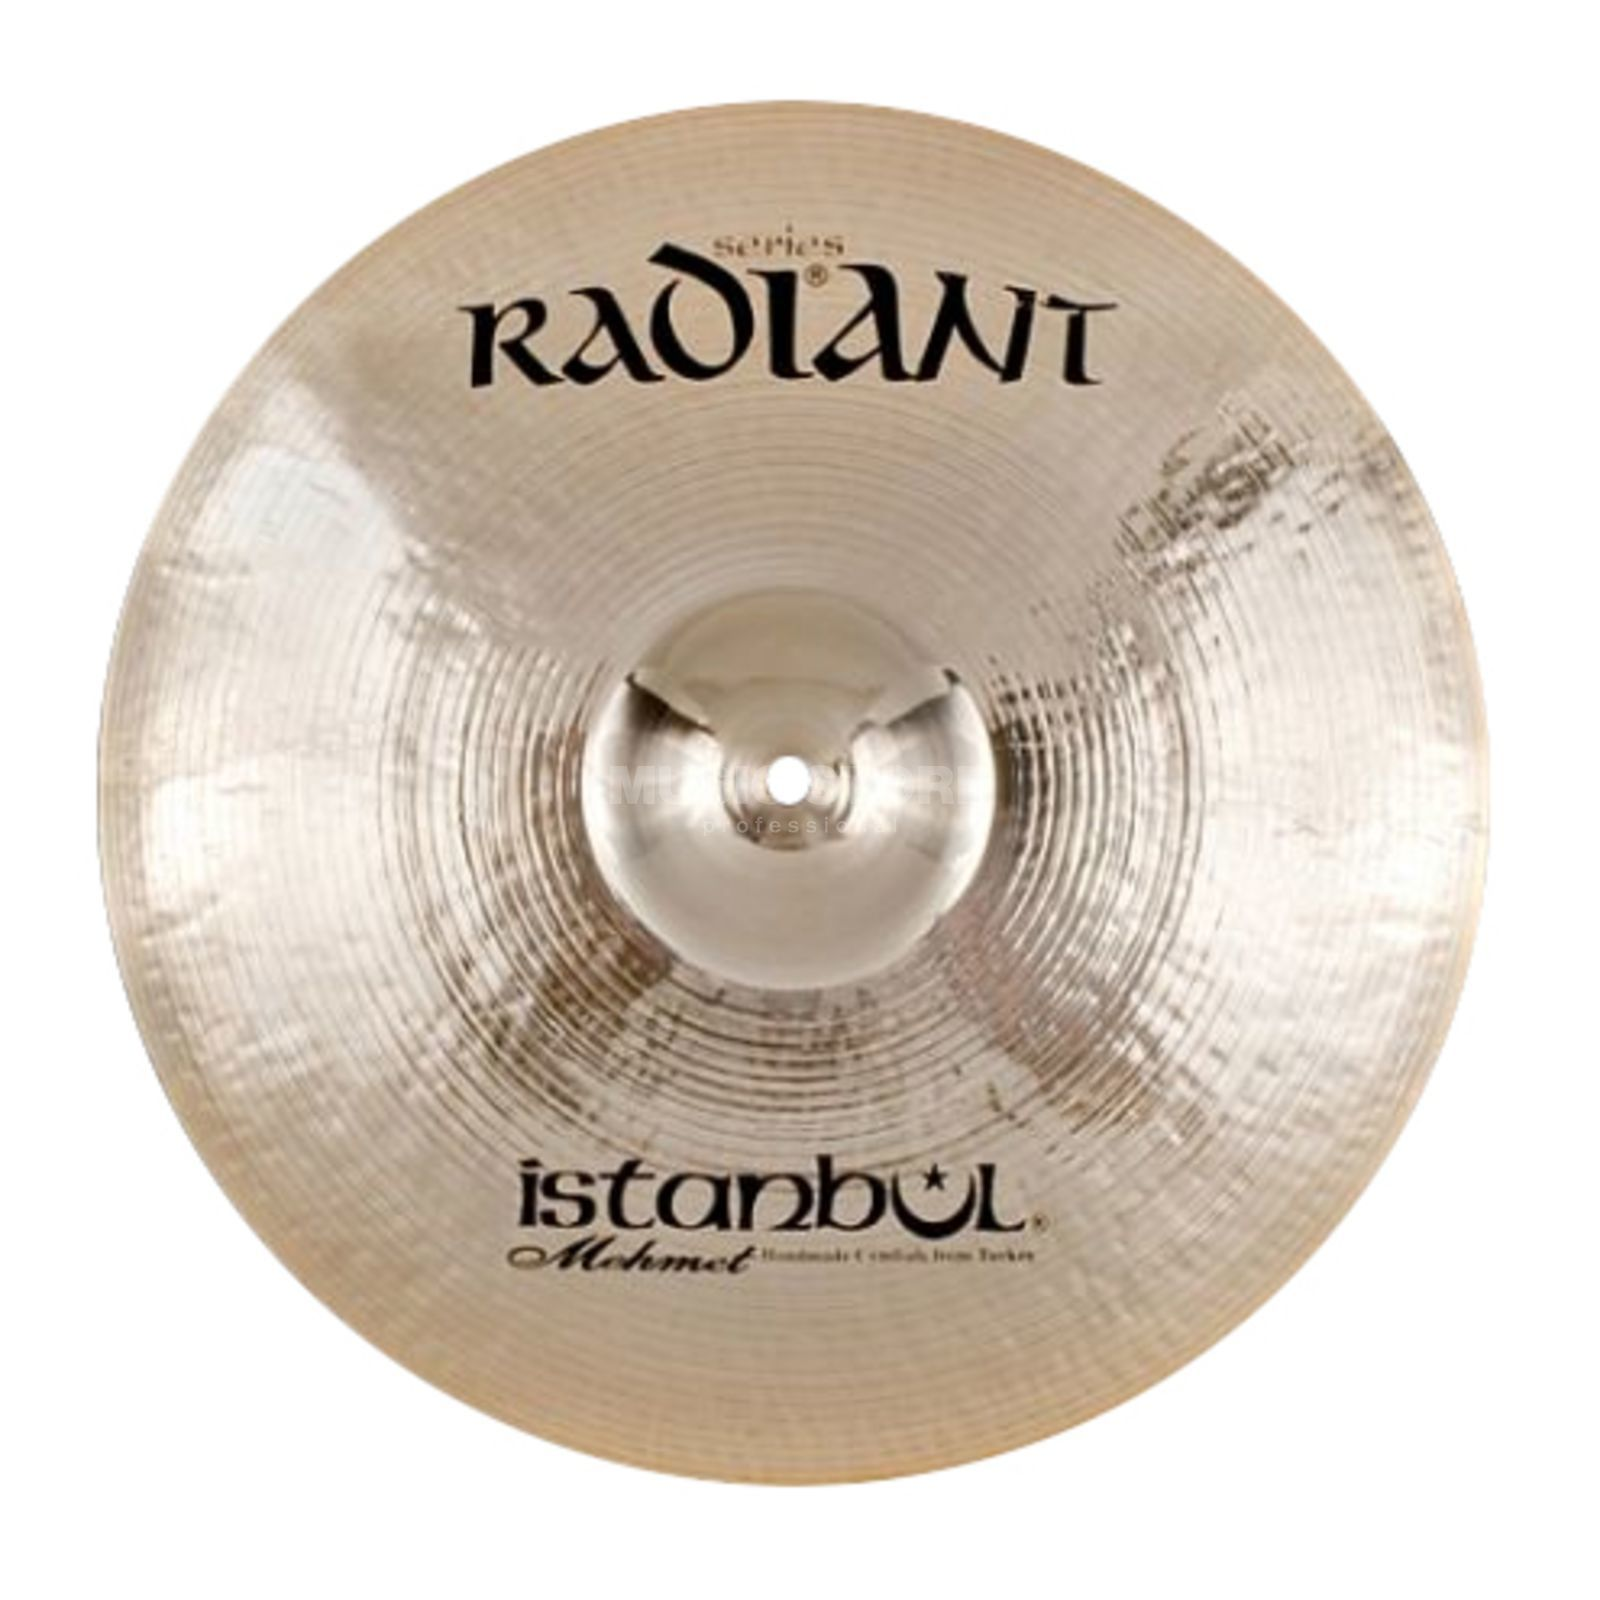 "Istanbul Radiant Medium Crash 18"", R-CM18 Image du produit"